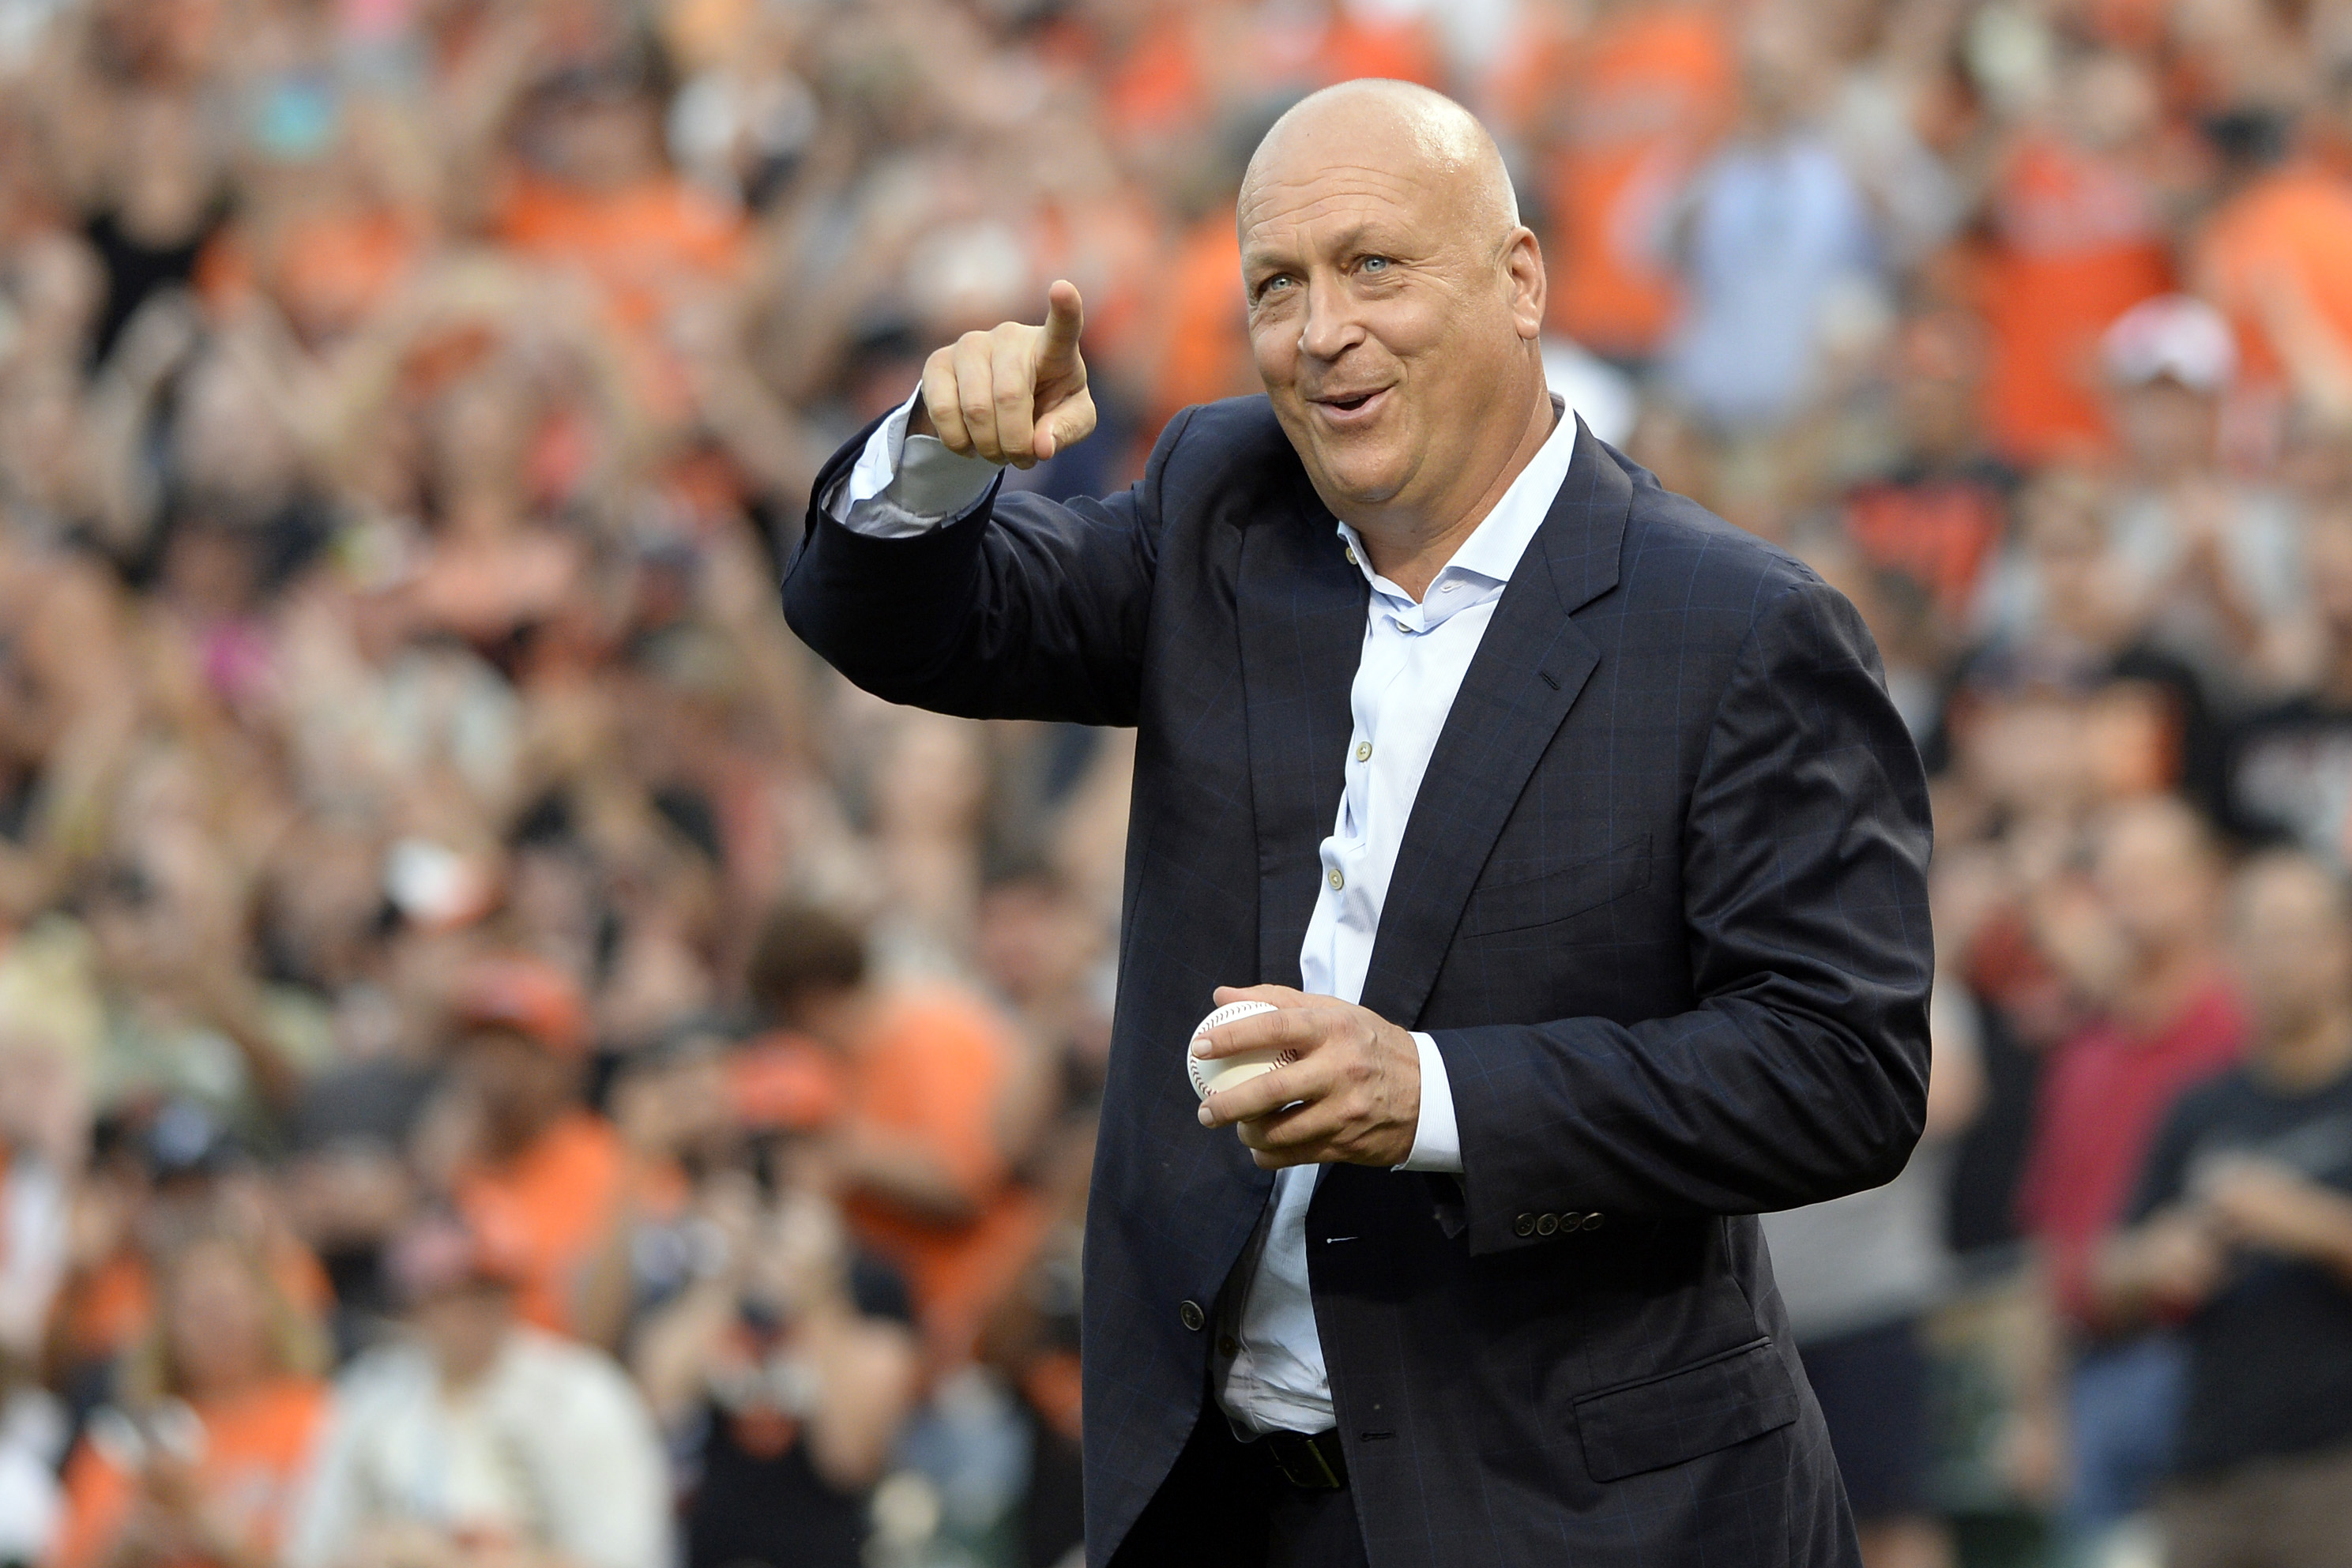 Sep 1, 2015; Baltimore, MD, USA; Baltimore Orioles former players Cal Ripken Jr. waves to the crowd before throwing out the first pitch on the 20th anniversary of breaking Lou Gehrig's 2131 consecutive games played streakbefore the game between the Baltimore Orioles and the Tampa Bay Rays at Oriole Park at Camden Yards. Mandatory Credit: Tommy Gilligan-USA TODAY Sports